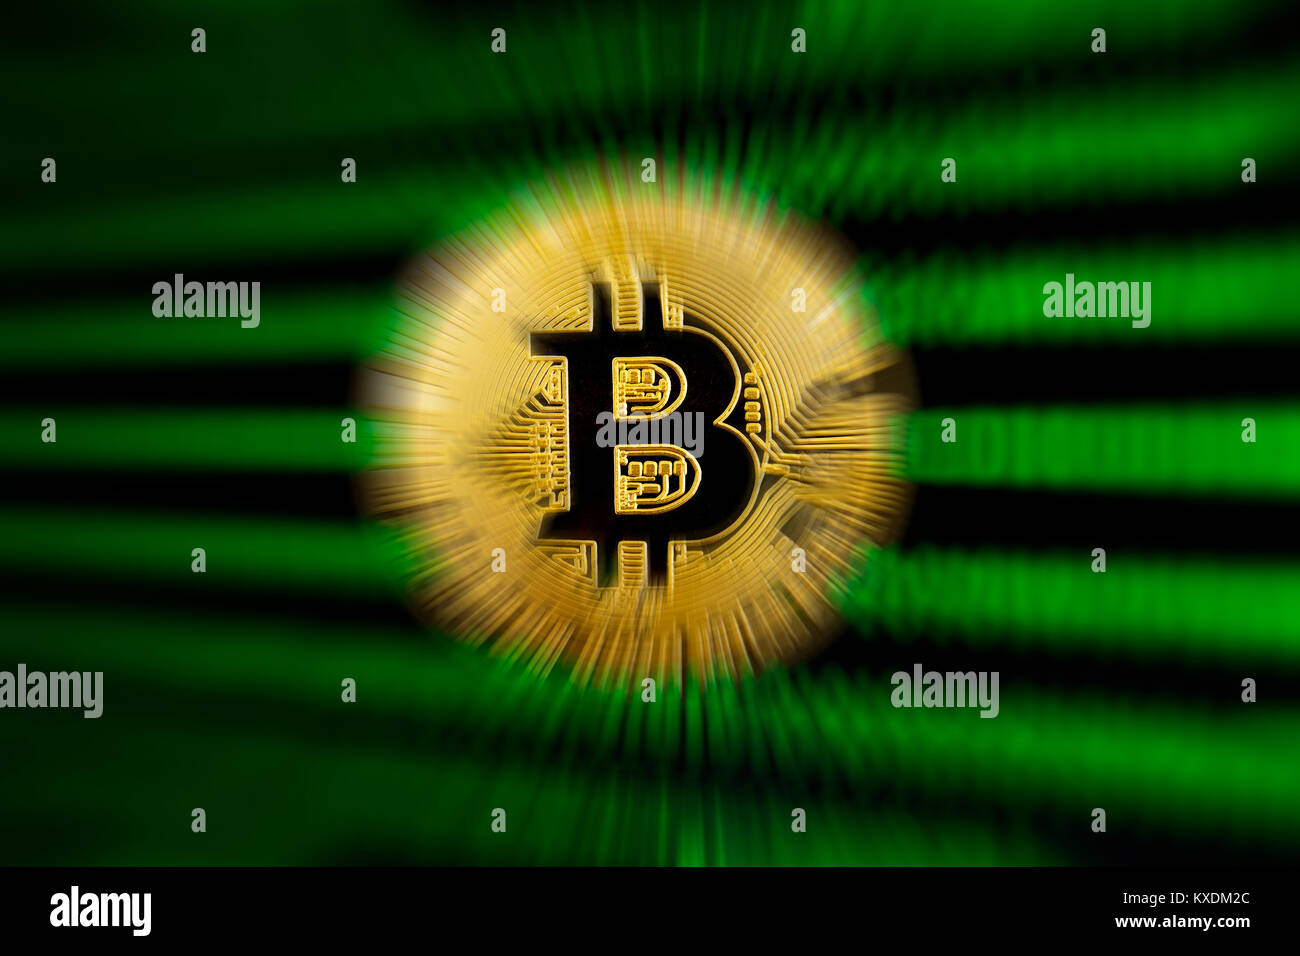 Symbol image digital currency, gold physical coin Bitcoin - Stock Image